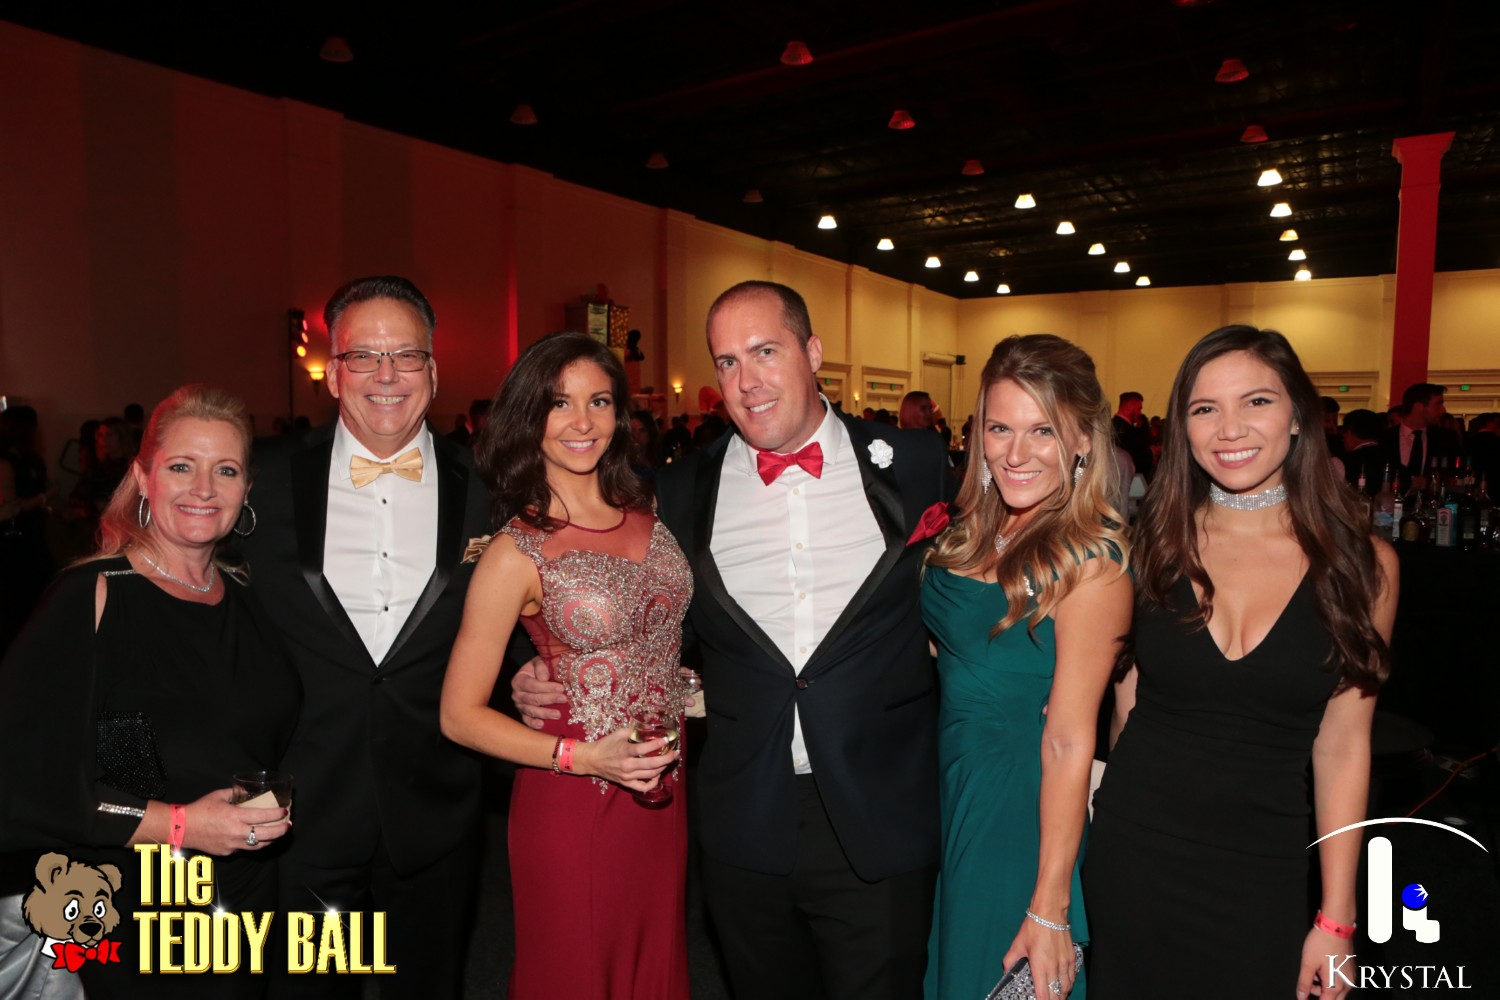 Teddy-Ball-2017-Krystal-Productions-P2-544.jpg